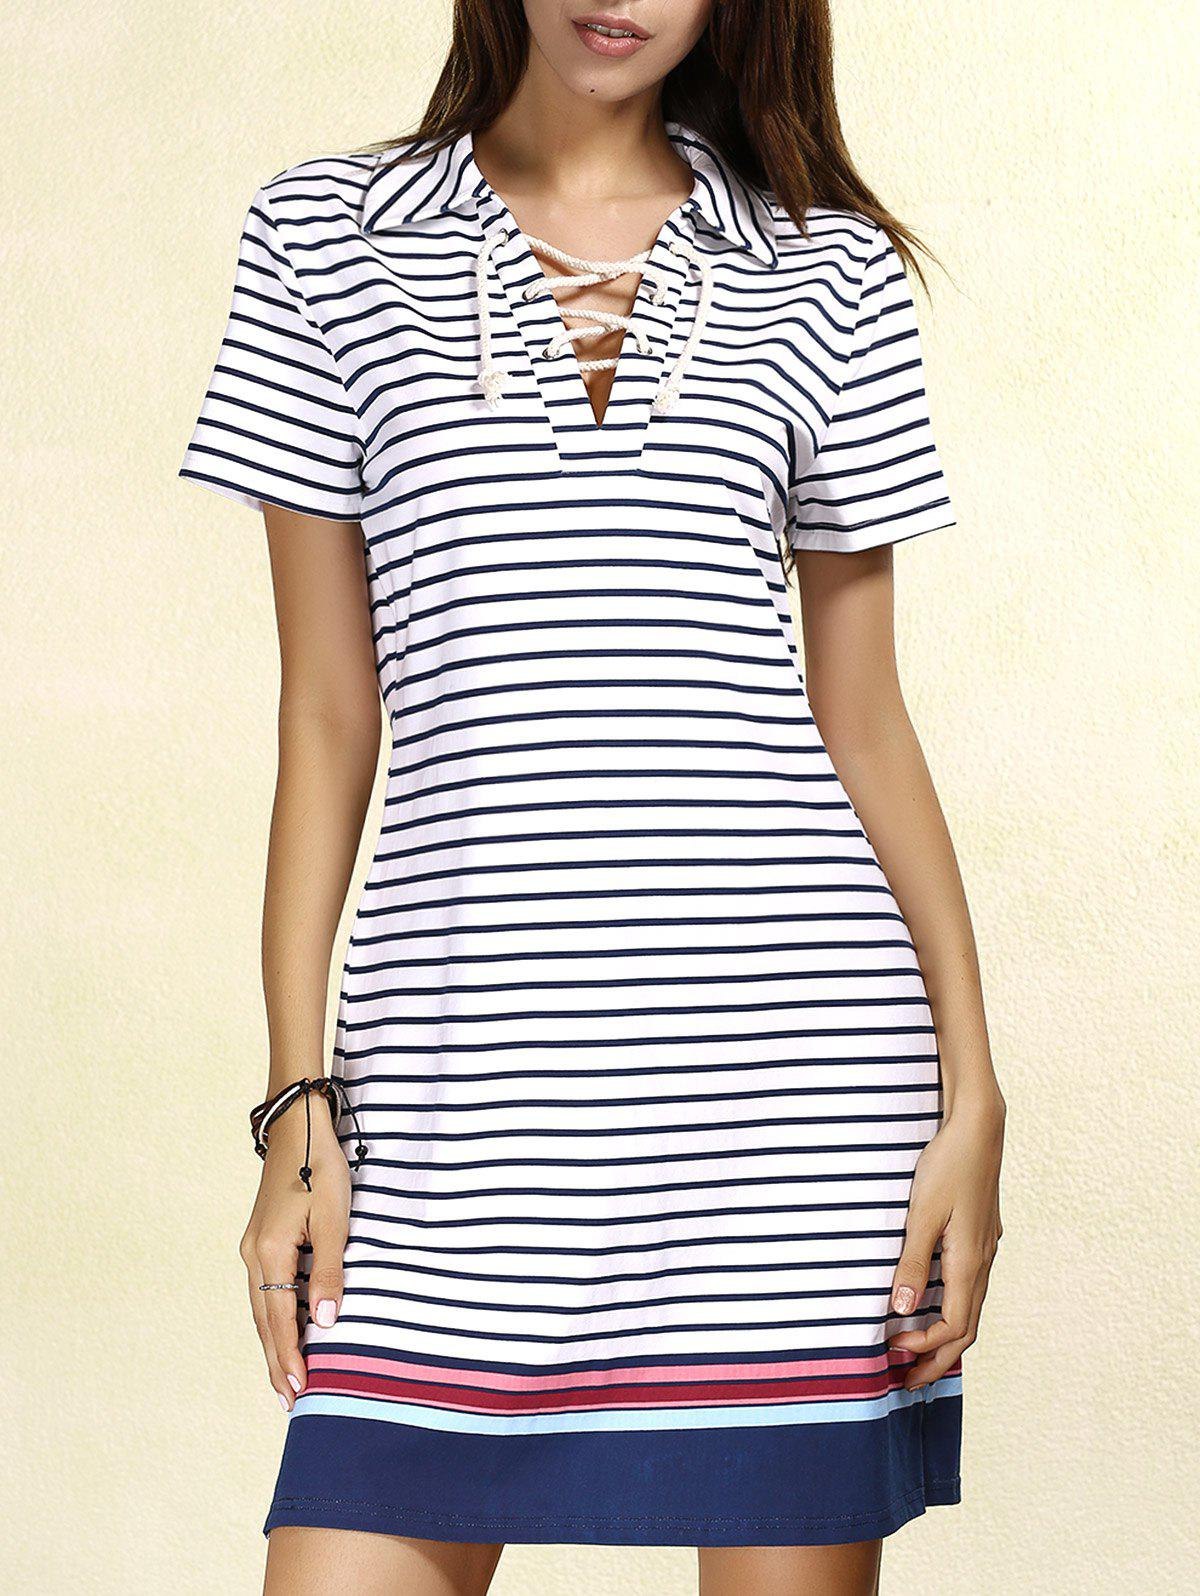 Preppy Style Colorful Striped Lace-Up Short Sleeve Dress For Women - L STRIPE